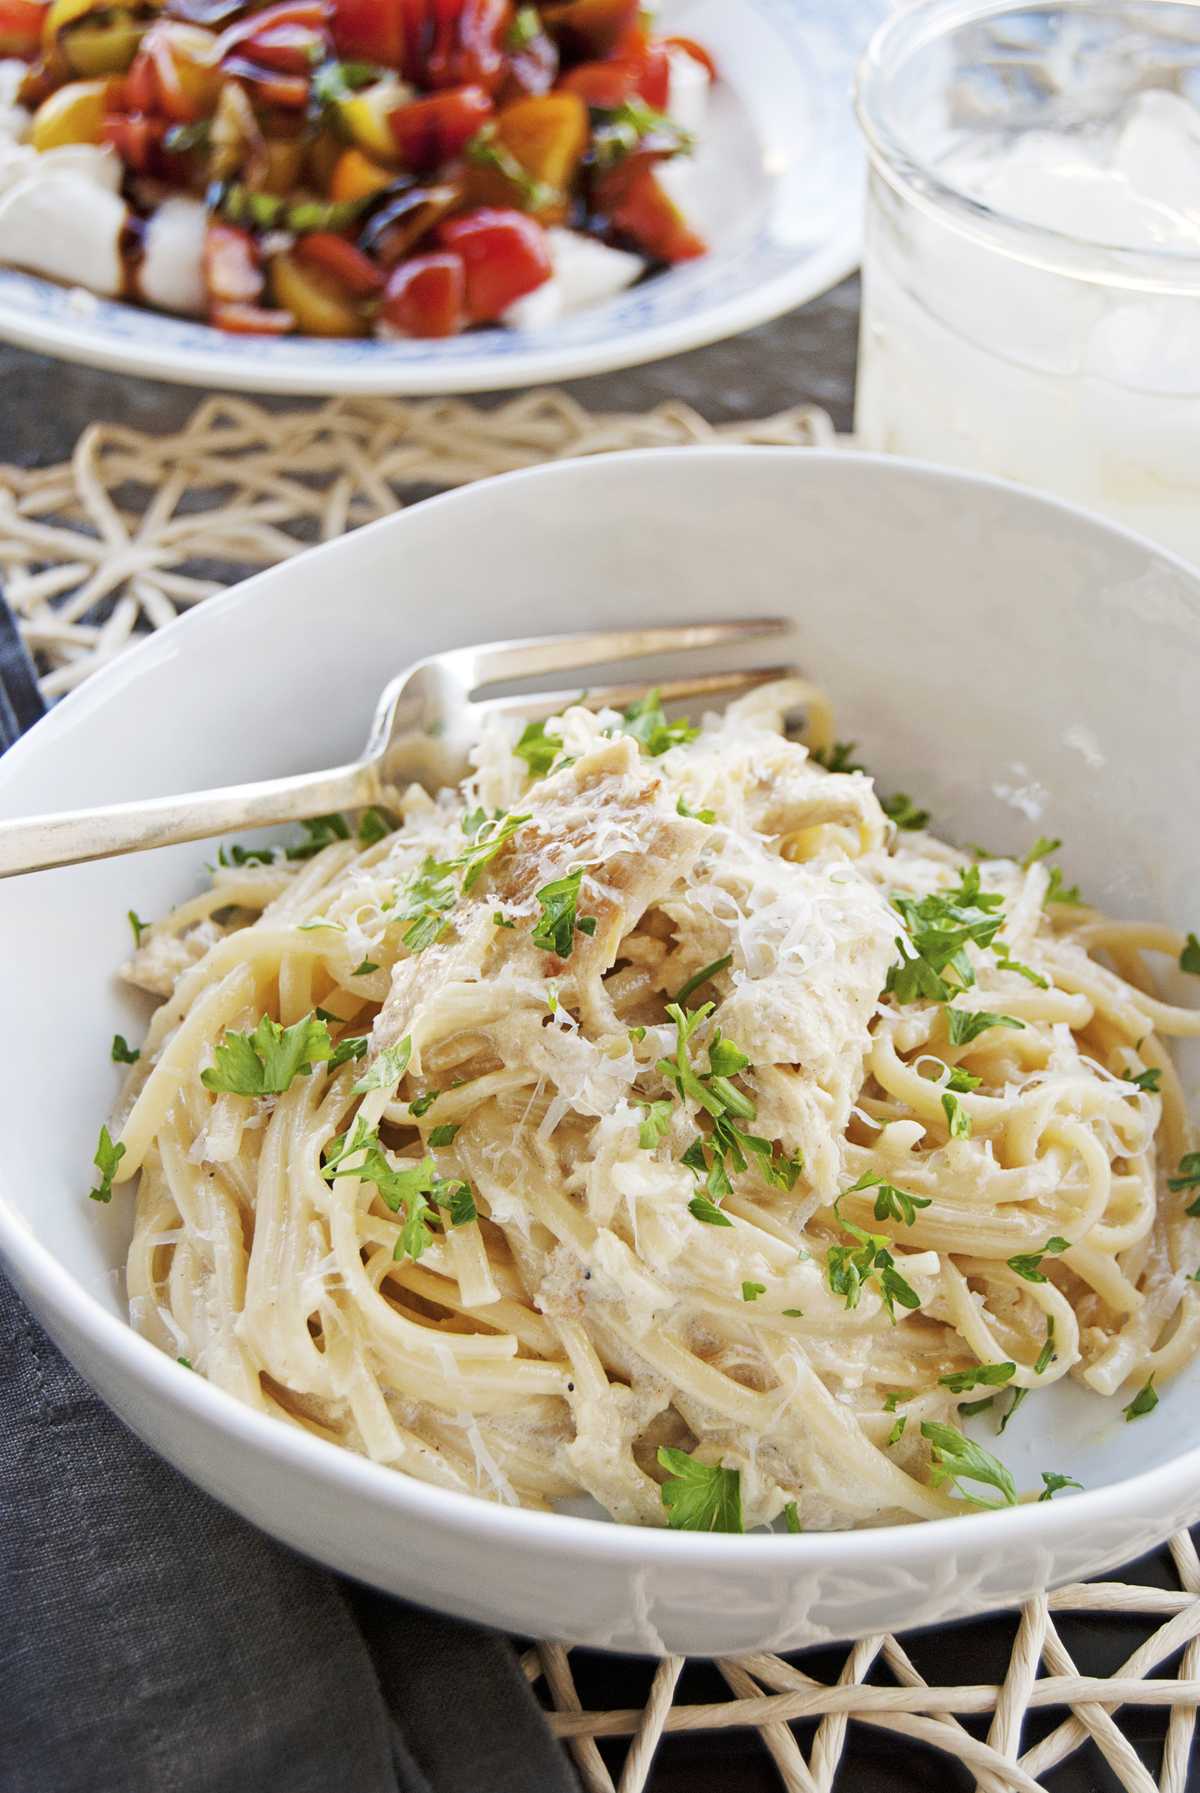 This creamy garlic chicken pasta features shredded seasoned chicken with linguine tossed in a super creamy and super garlicky sauce!